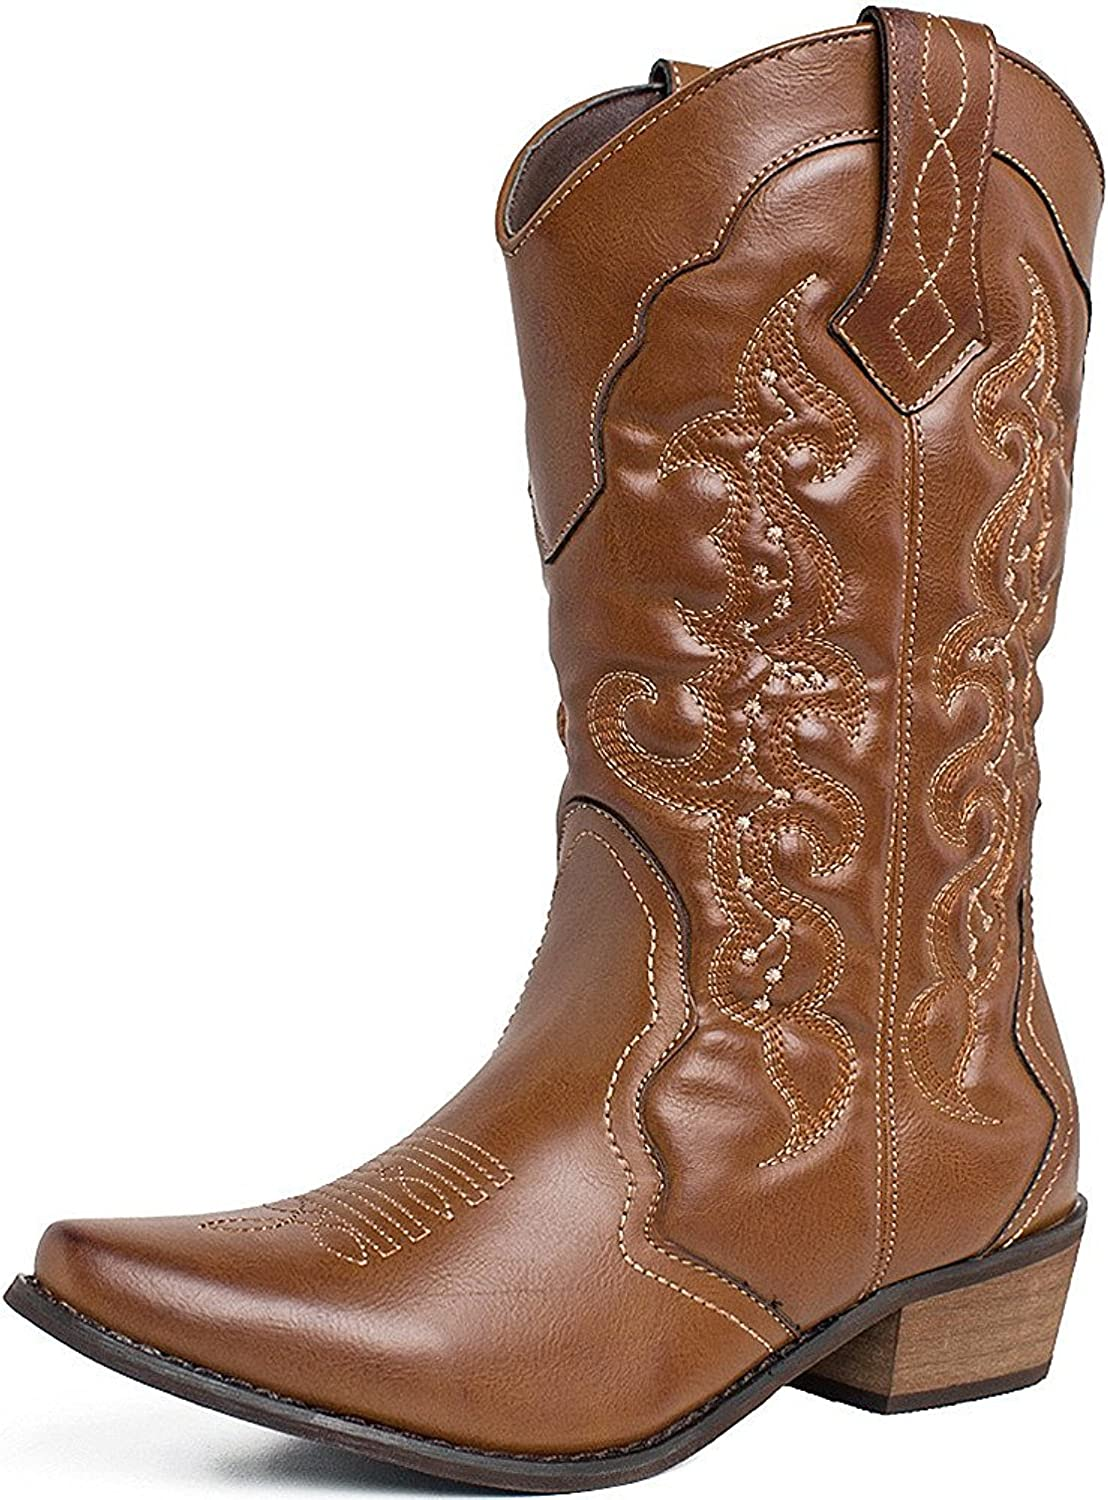 Free shipping SheSole Womens Winter Western Boots Cowgirl Max 71% OFF Cowboy